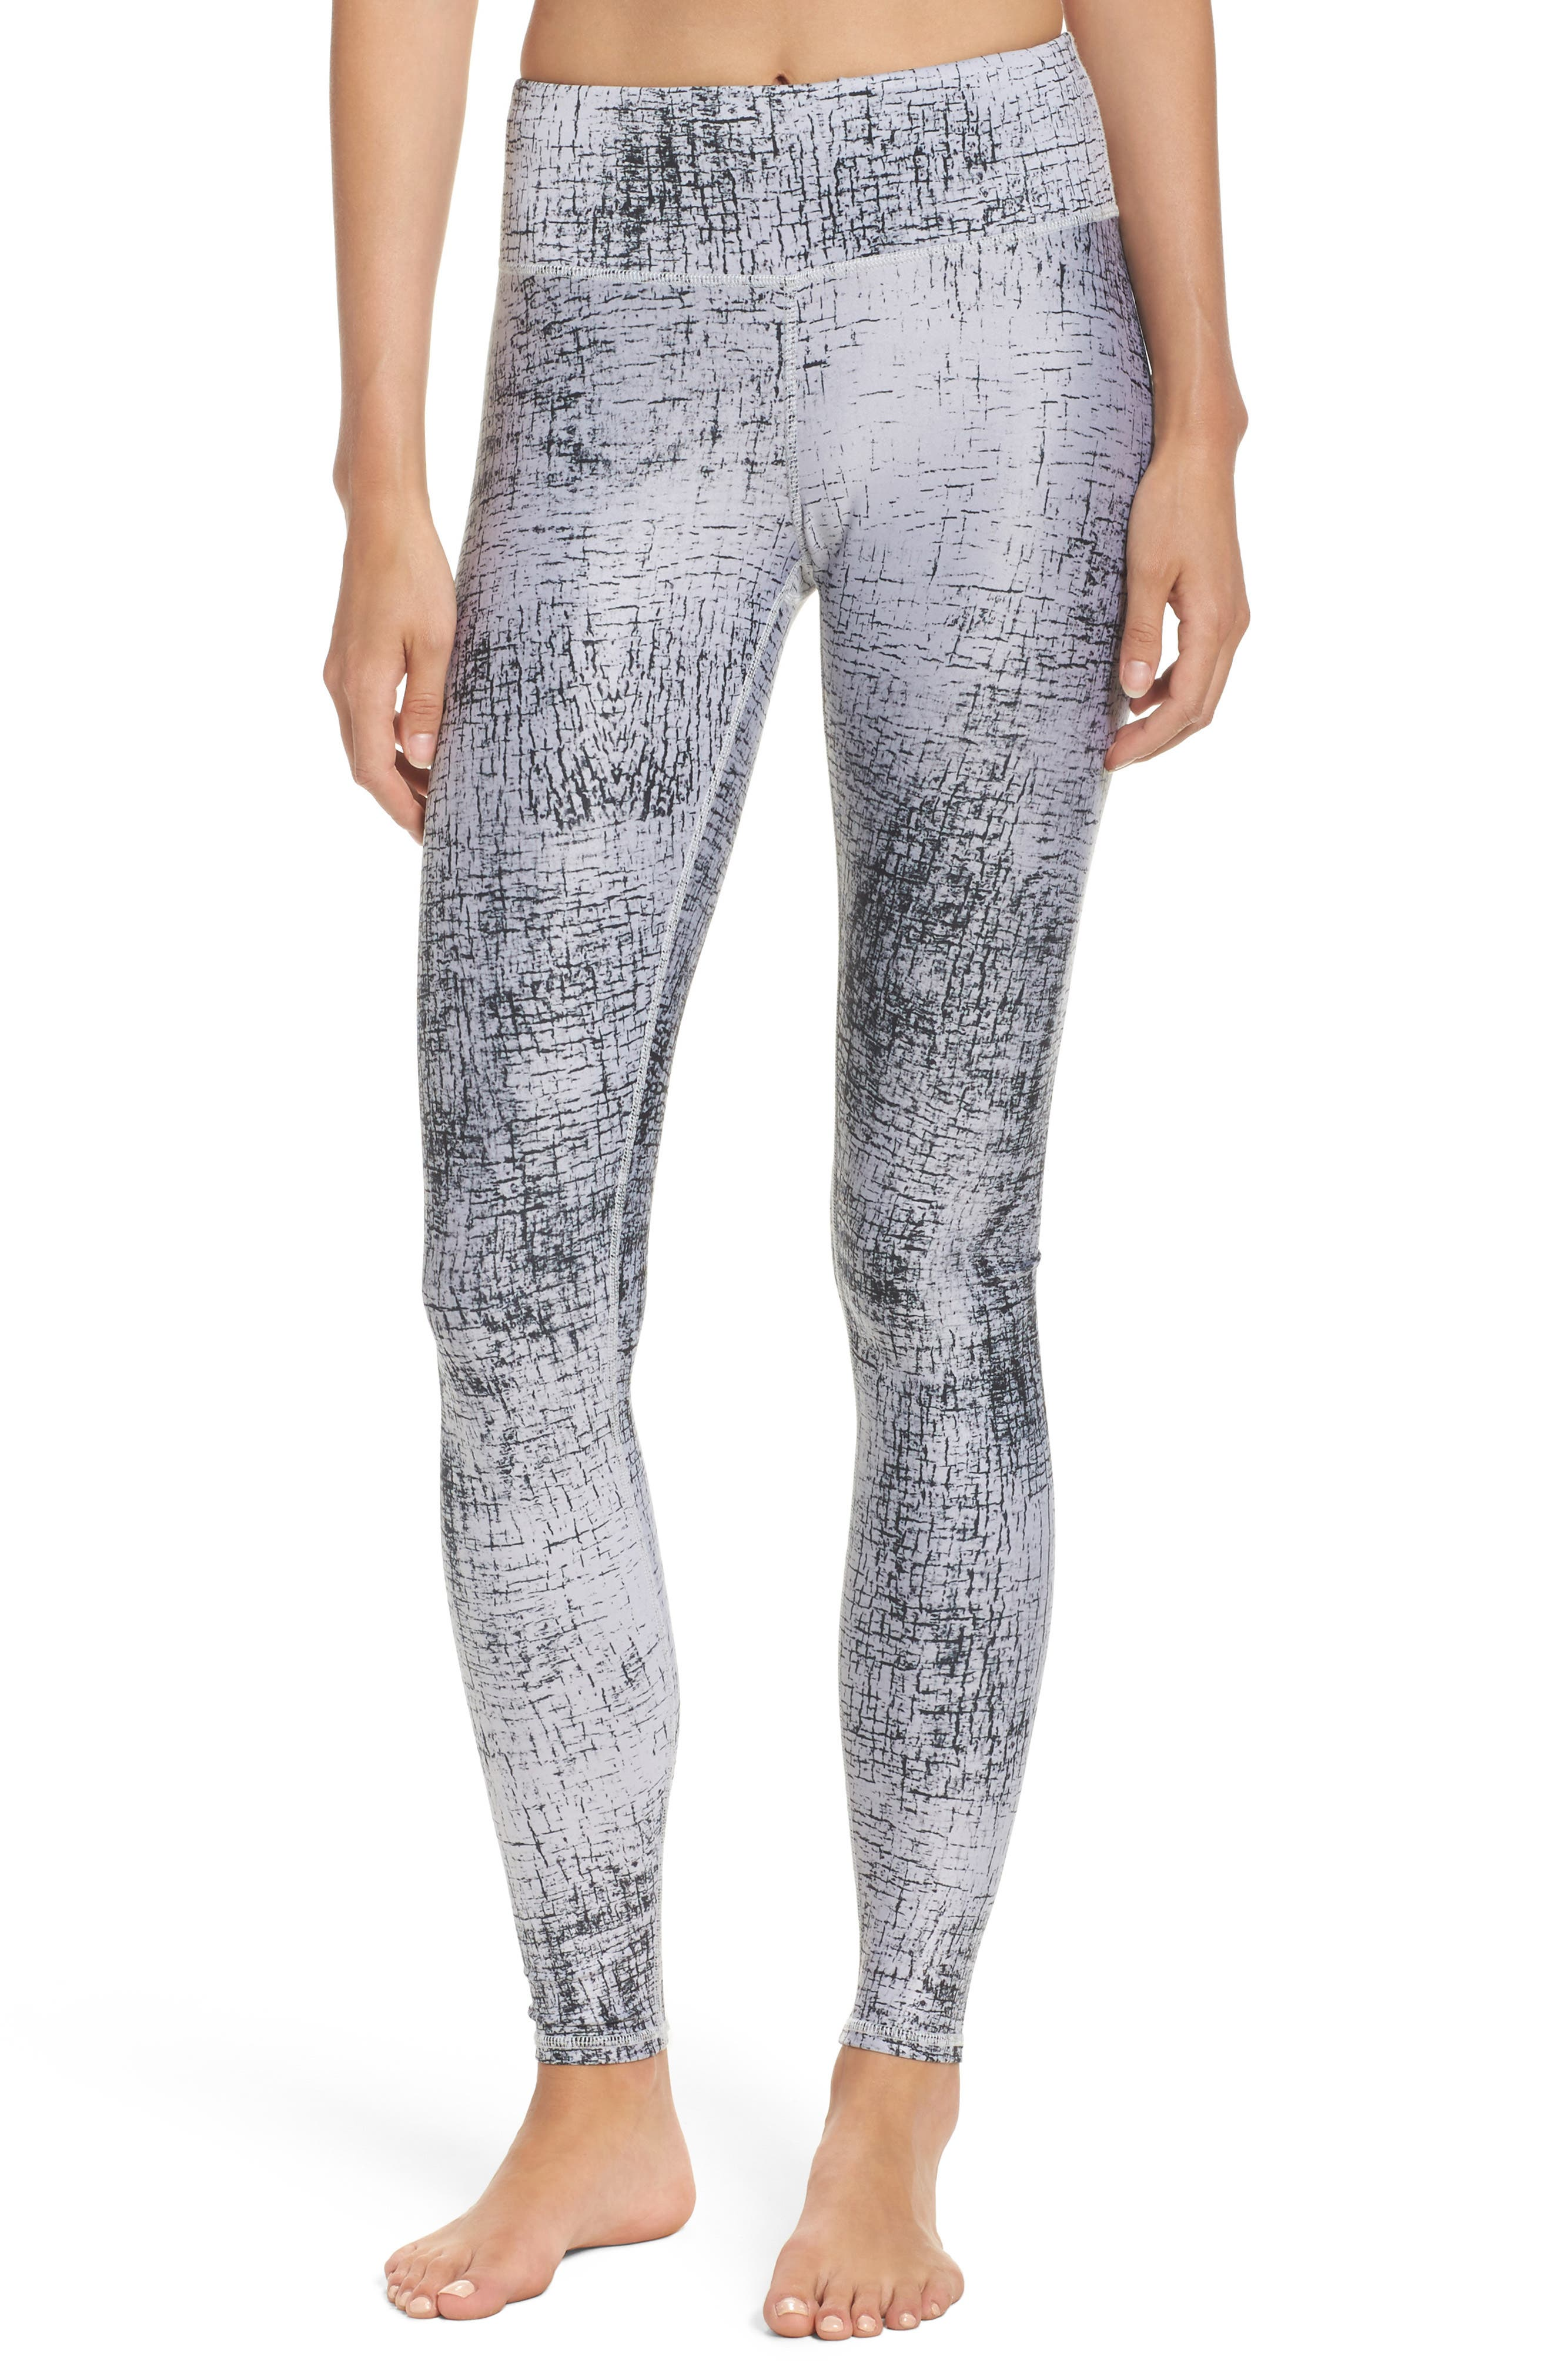 Tech Lift Airbrush Leggings,                         Main,                         color, Crackle